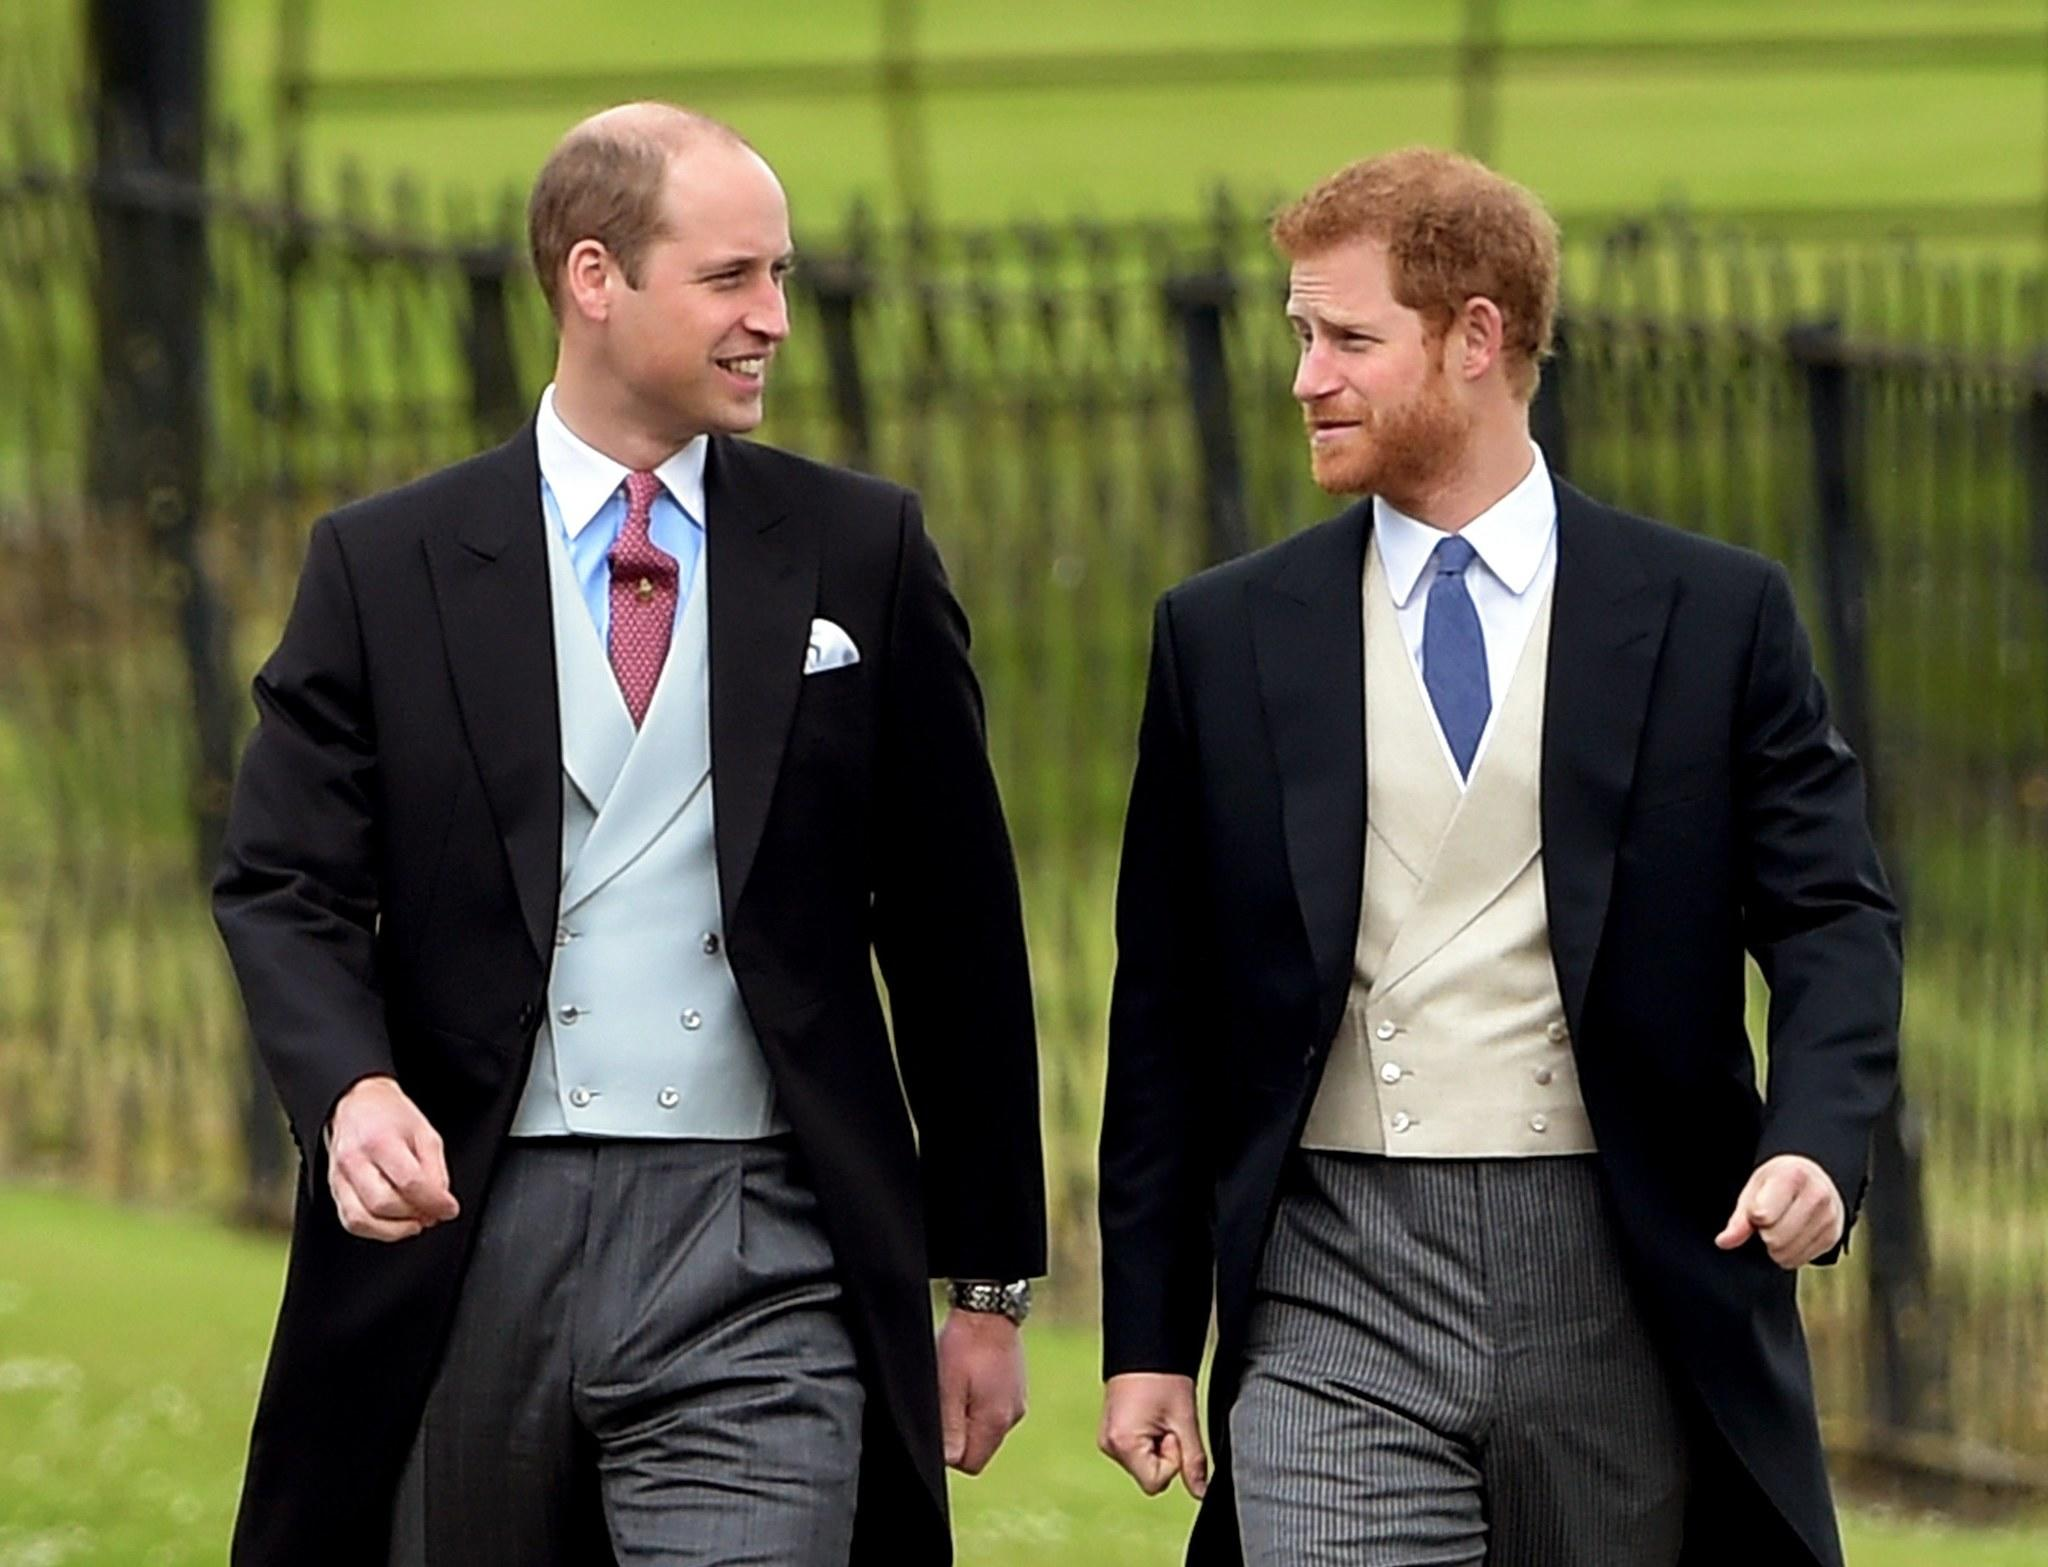 Prince William, left, and Prince Harry attend the wedding of Pippa Middleton on May 20, 2017. (EPA)